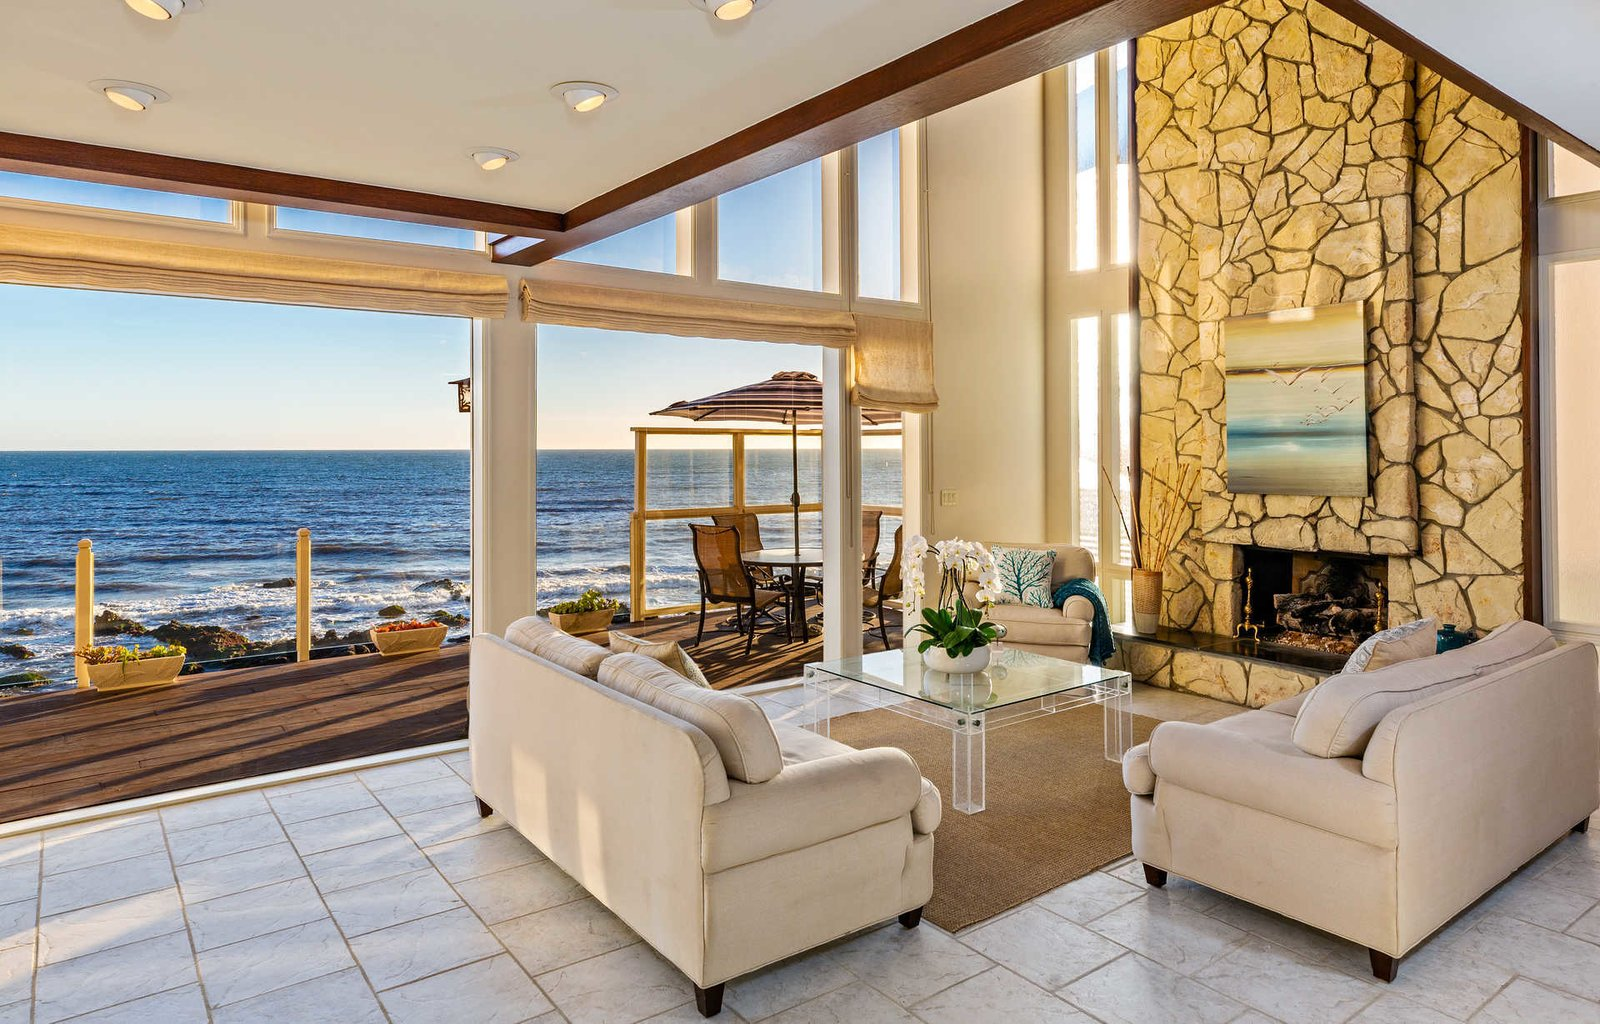 House Building Type and Beach House Building Type  It's All About The Light at This Traditional Malibu Beach House